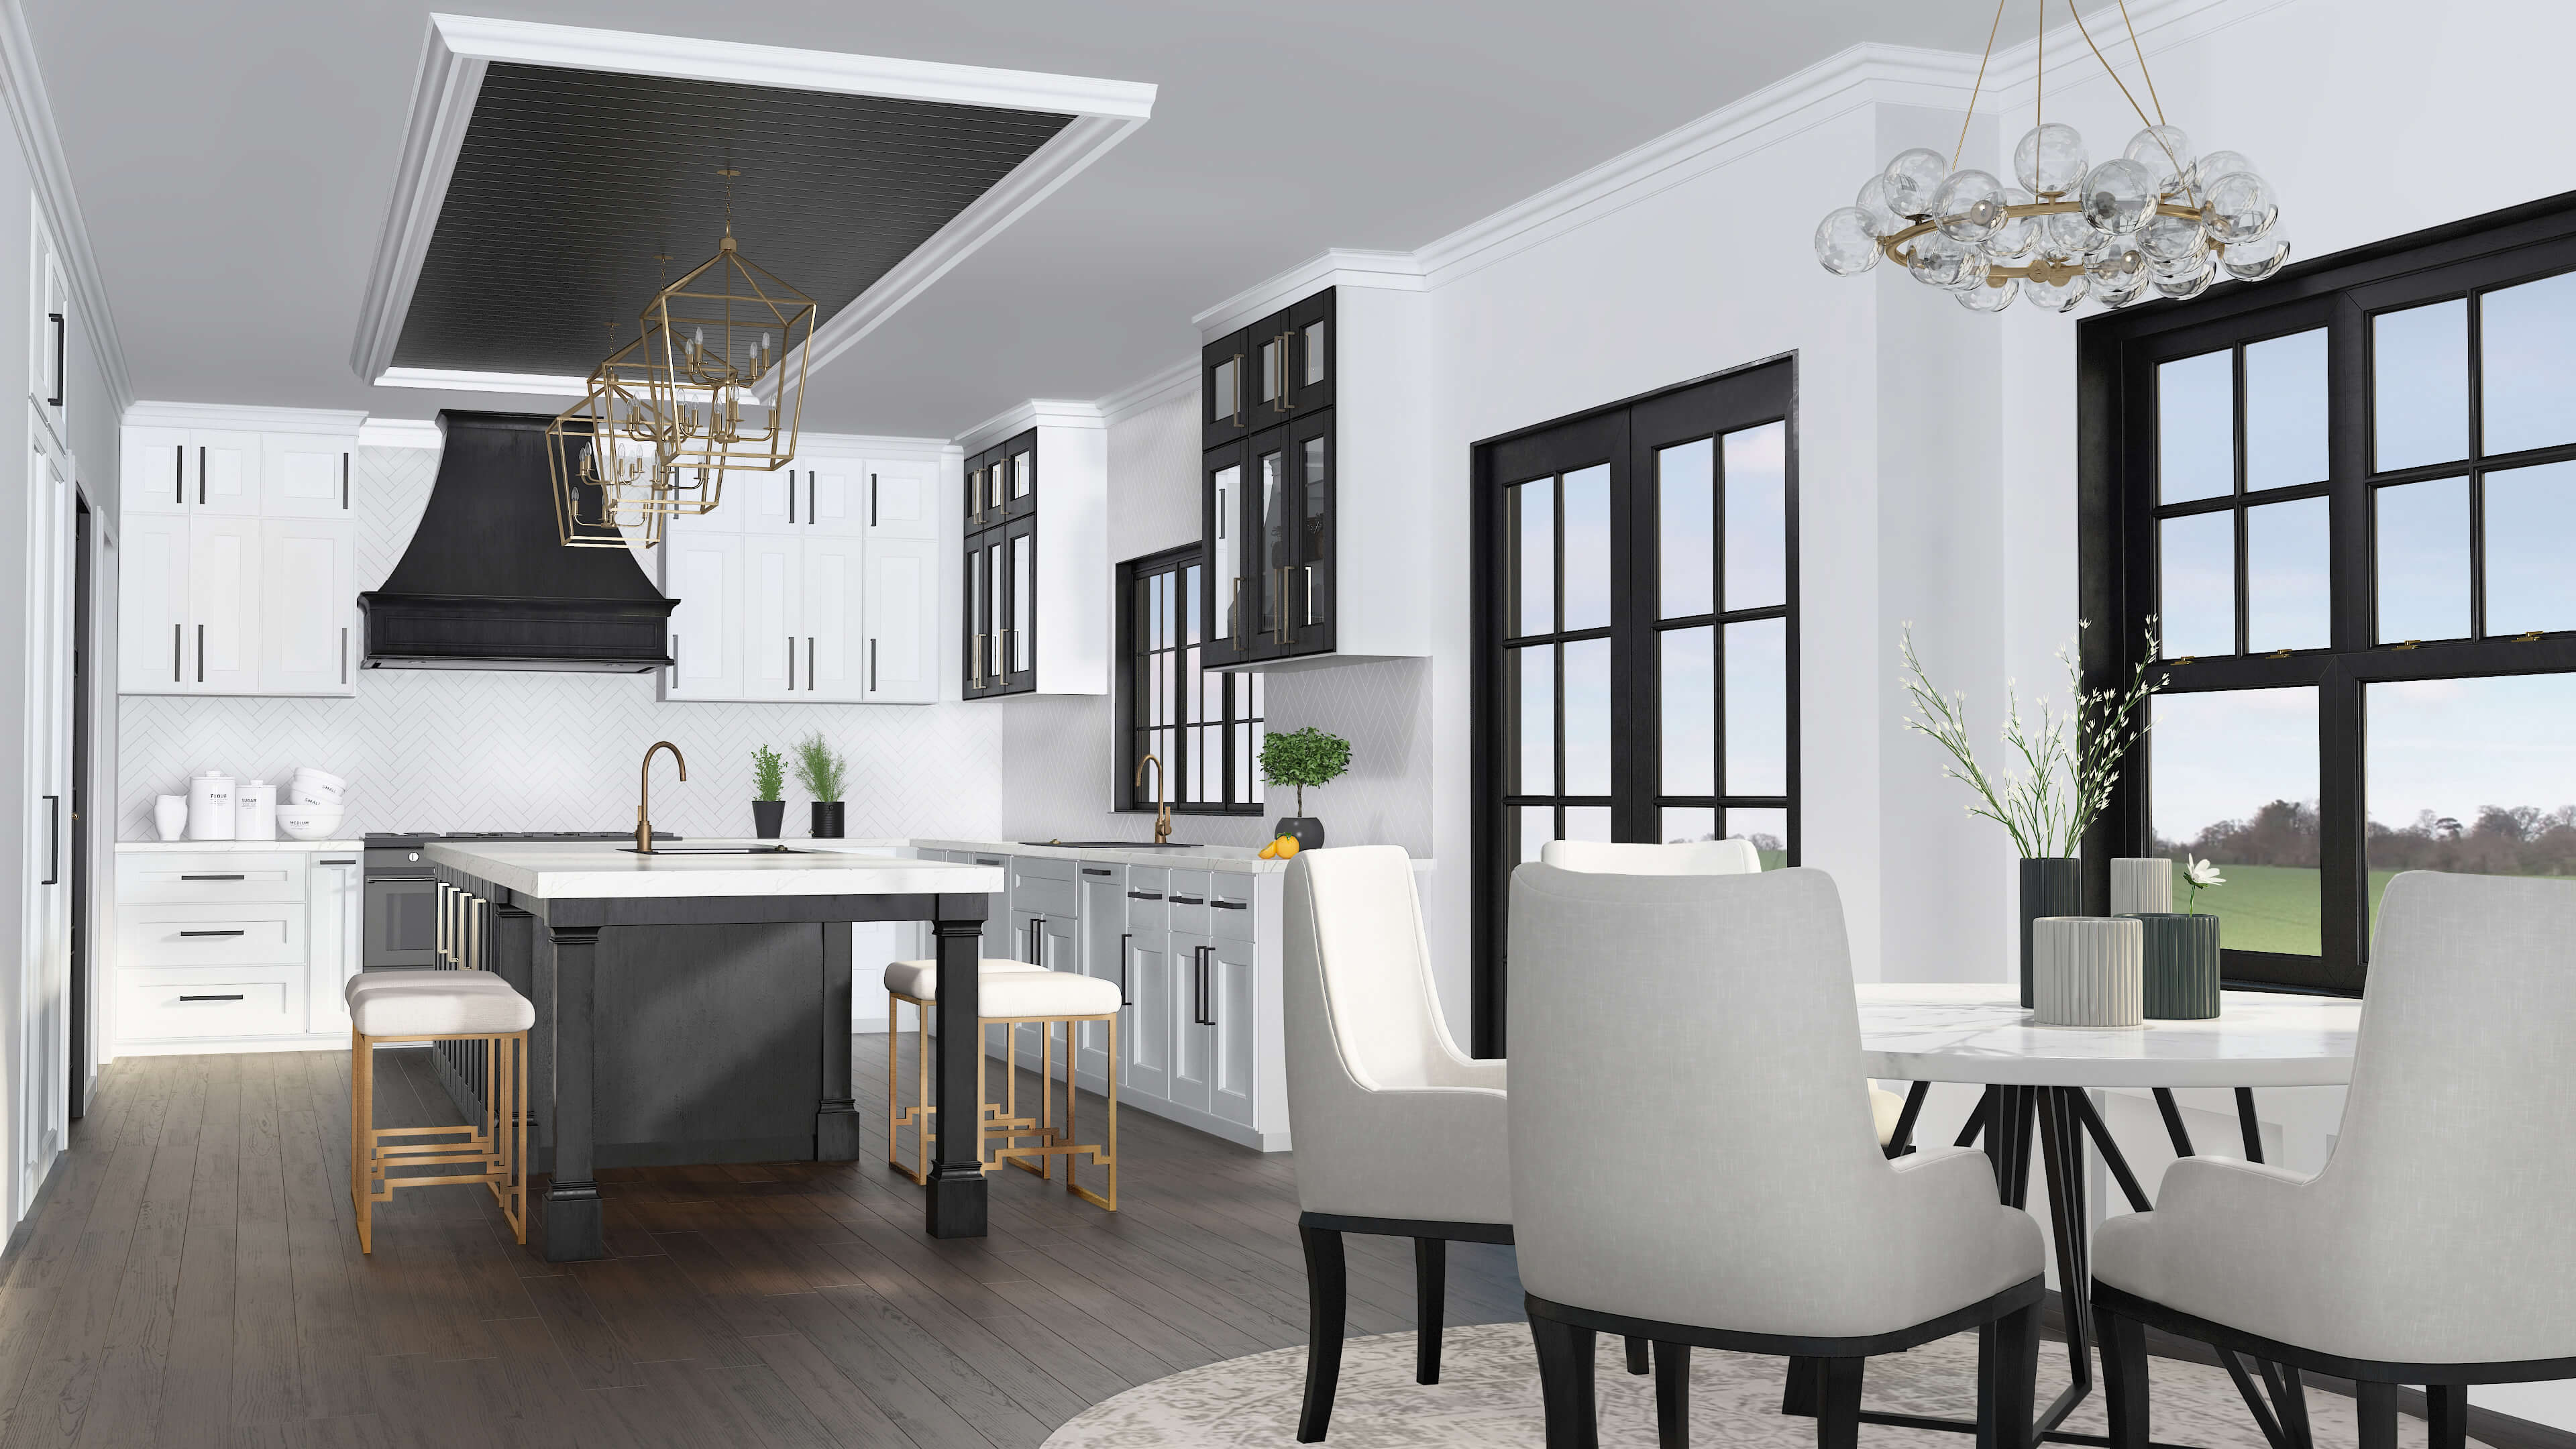 home-interior-in-New-Jersey-1